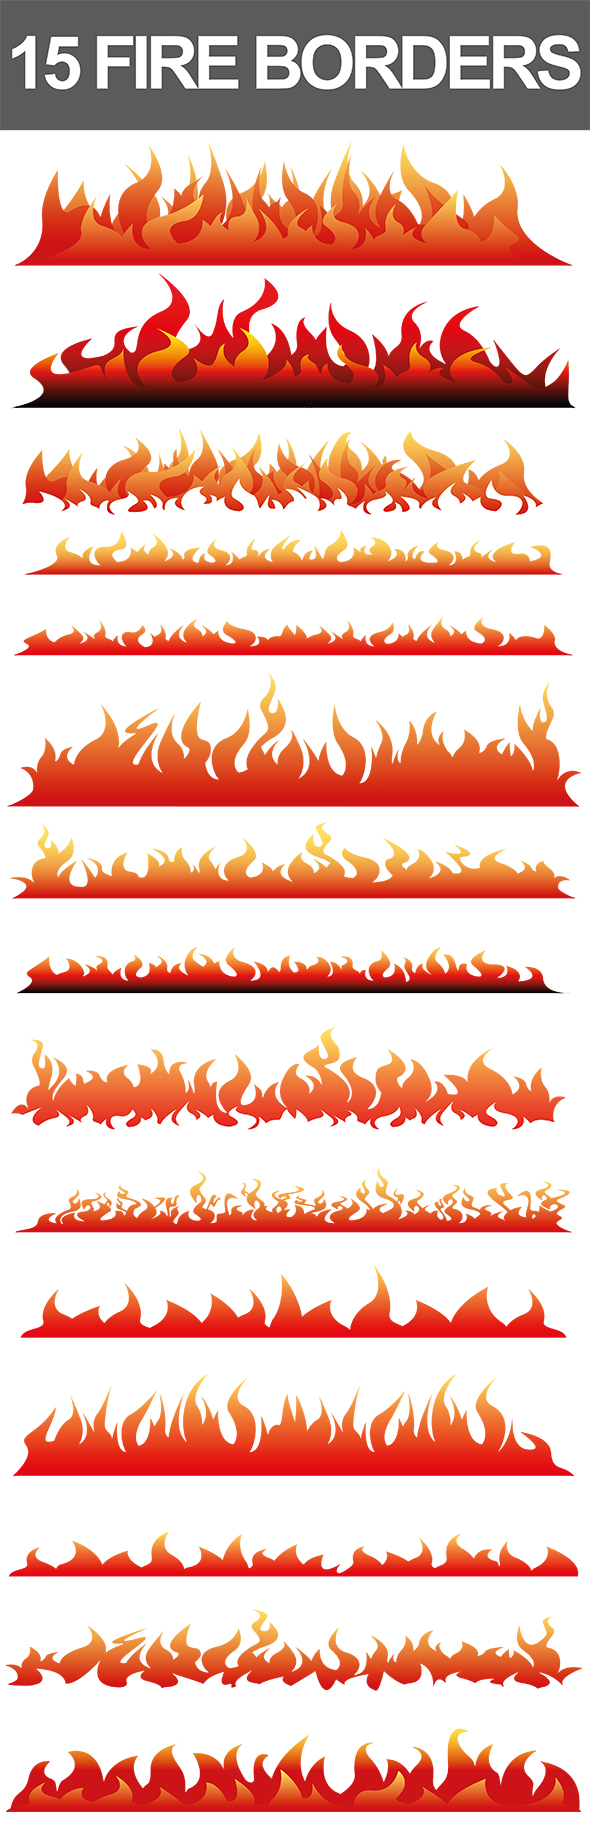 15 Fire Border Vectors by nadaimages